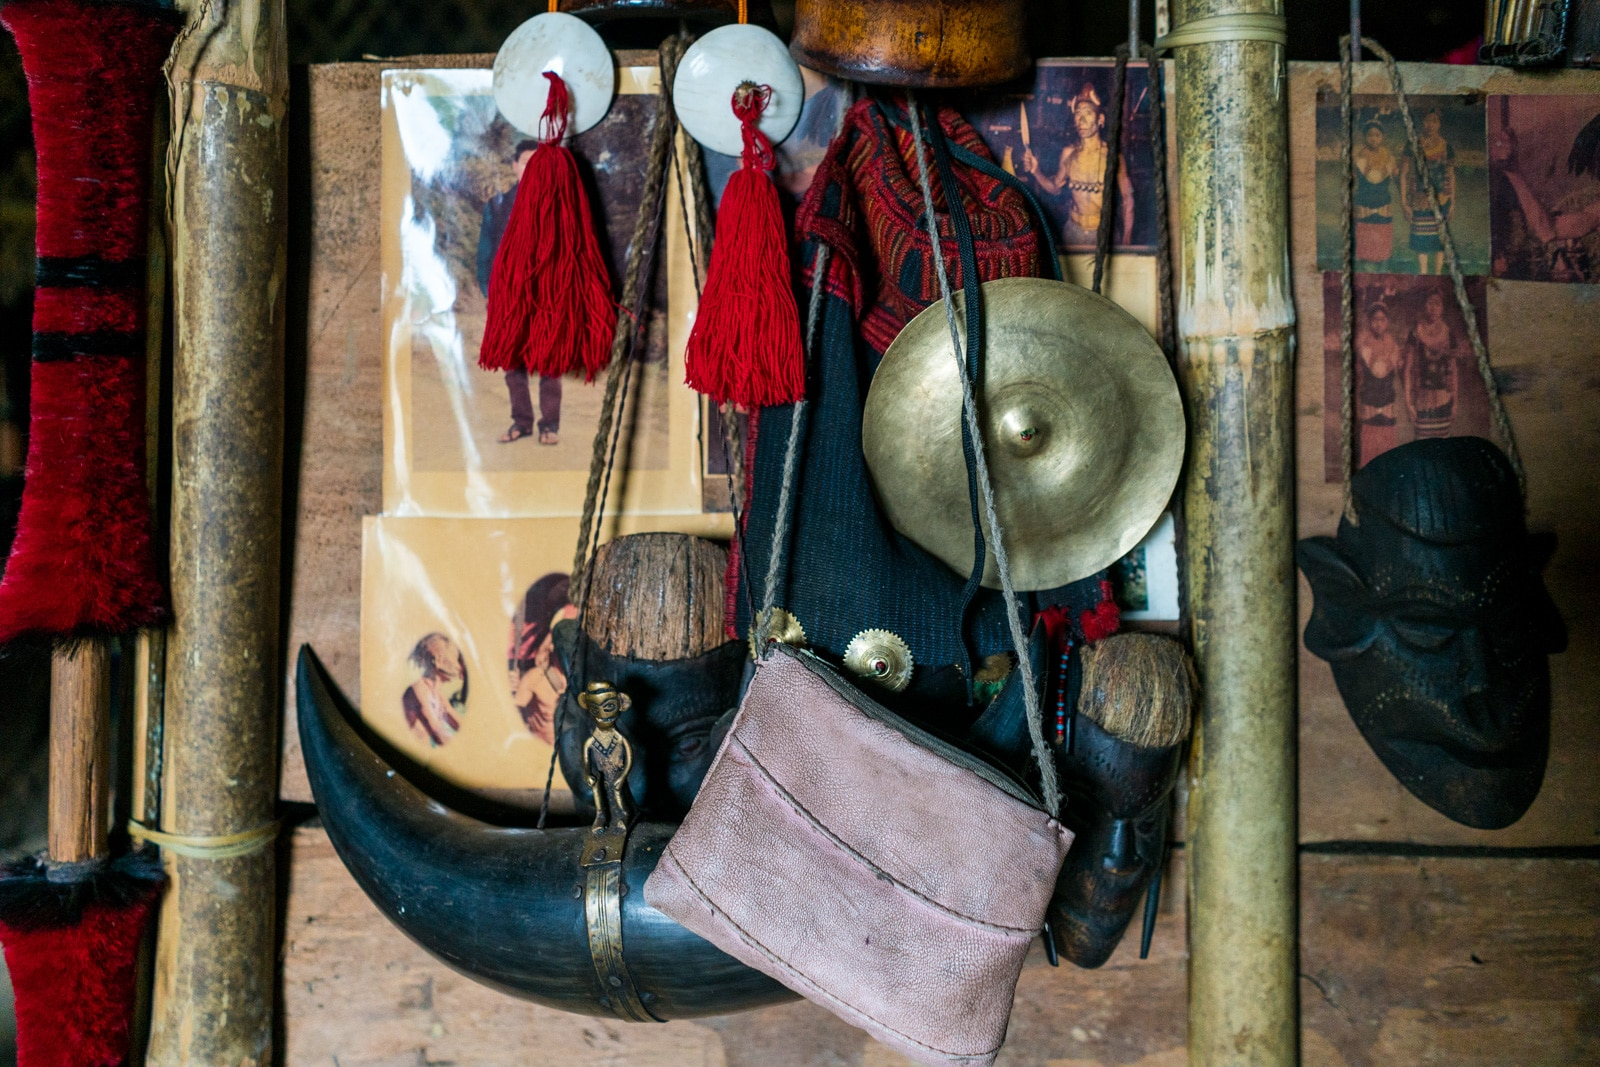 Opium and Jesus and headhunting in Longwa Village, Nagaland, India - Spears, red tassels, and photos on the bamboo hut wall - Lost With Purpose